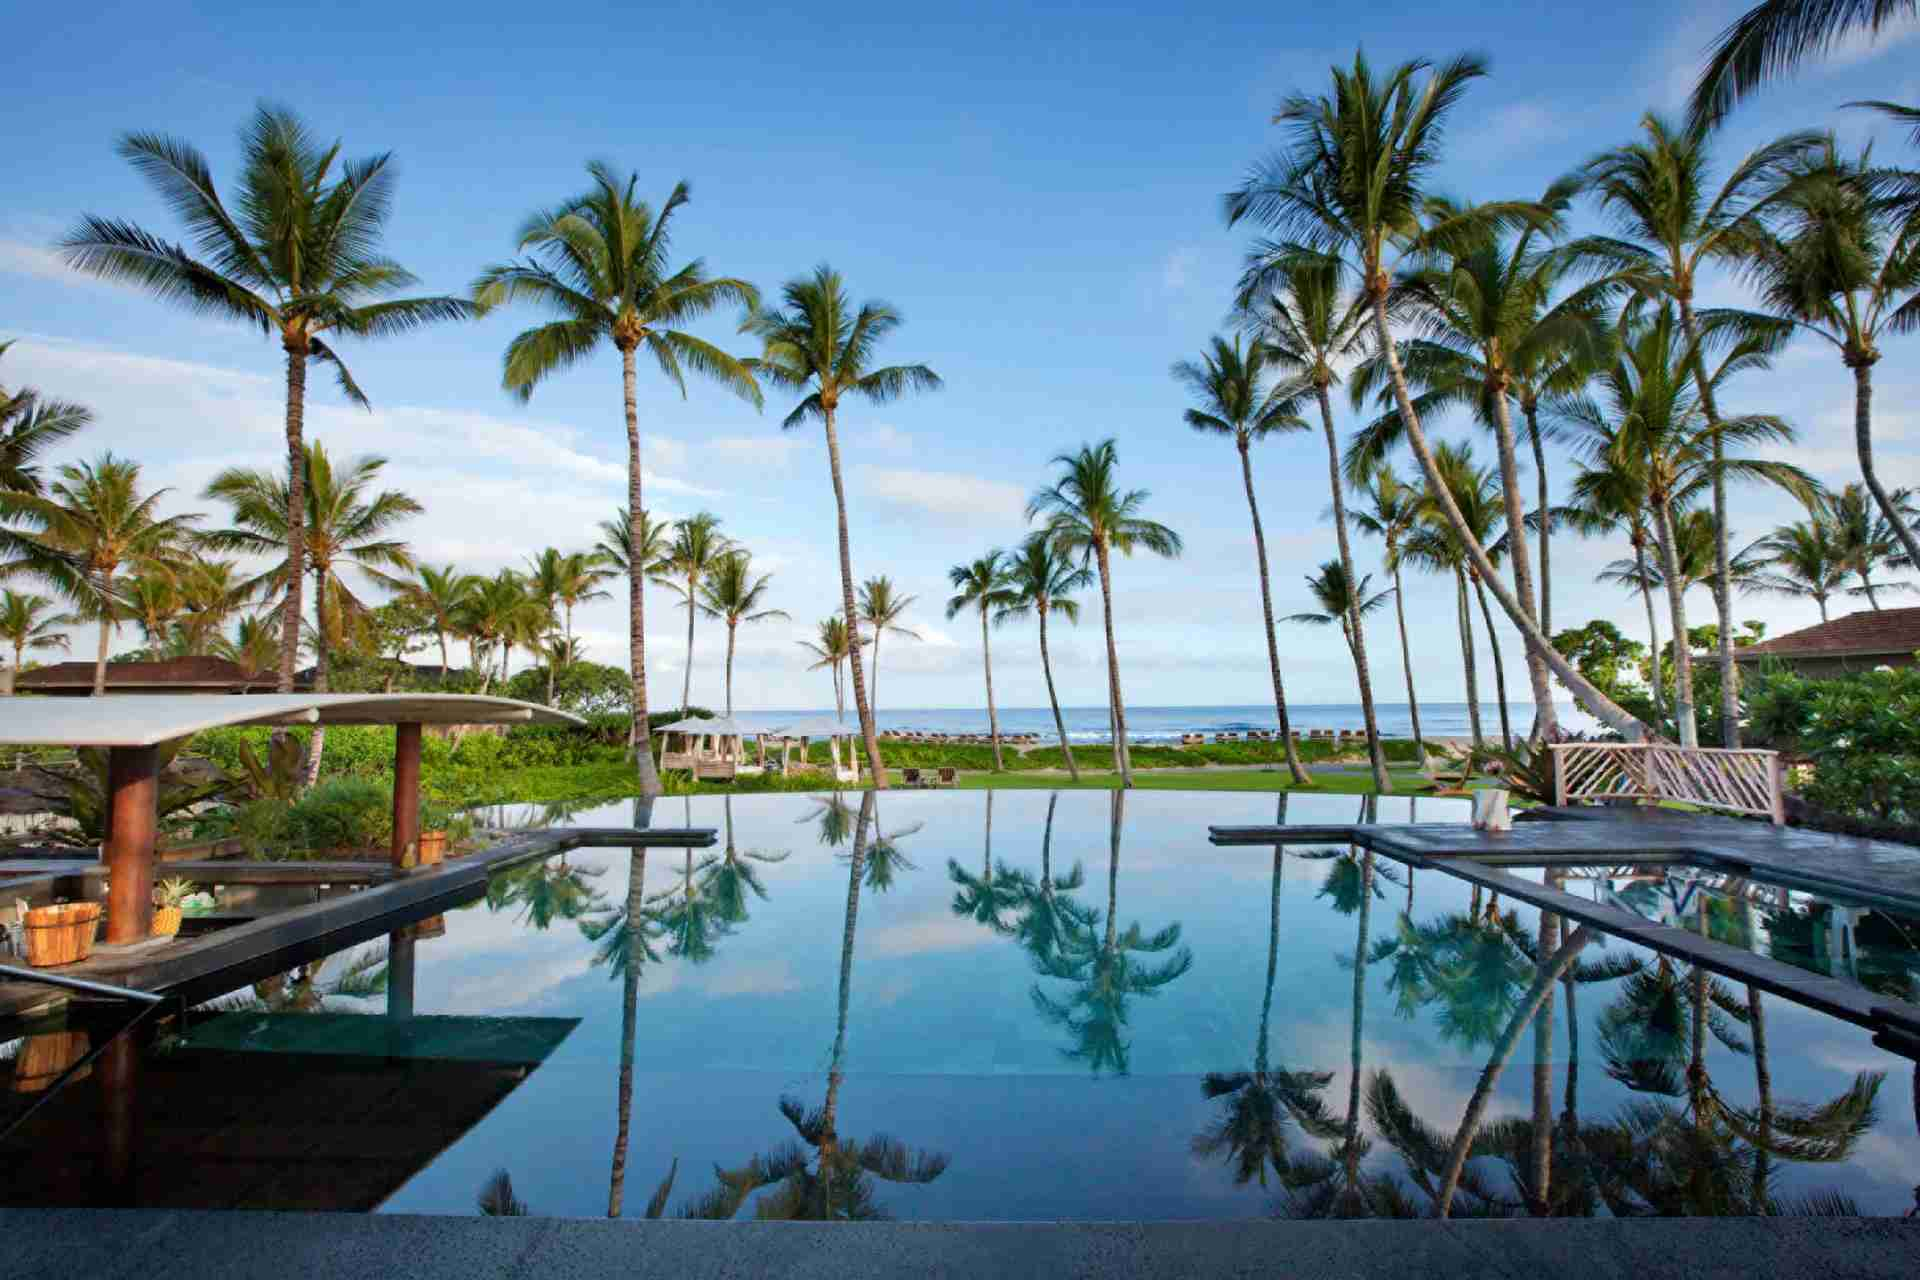 Photo courtesy of Four Seasons Resort Hualalai